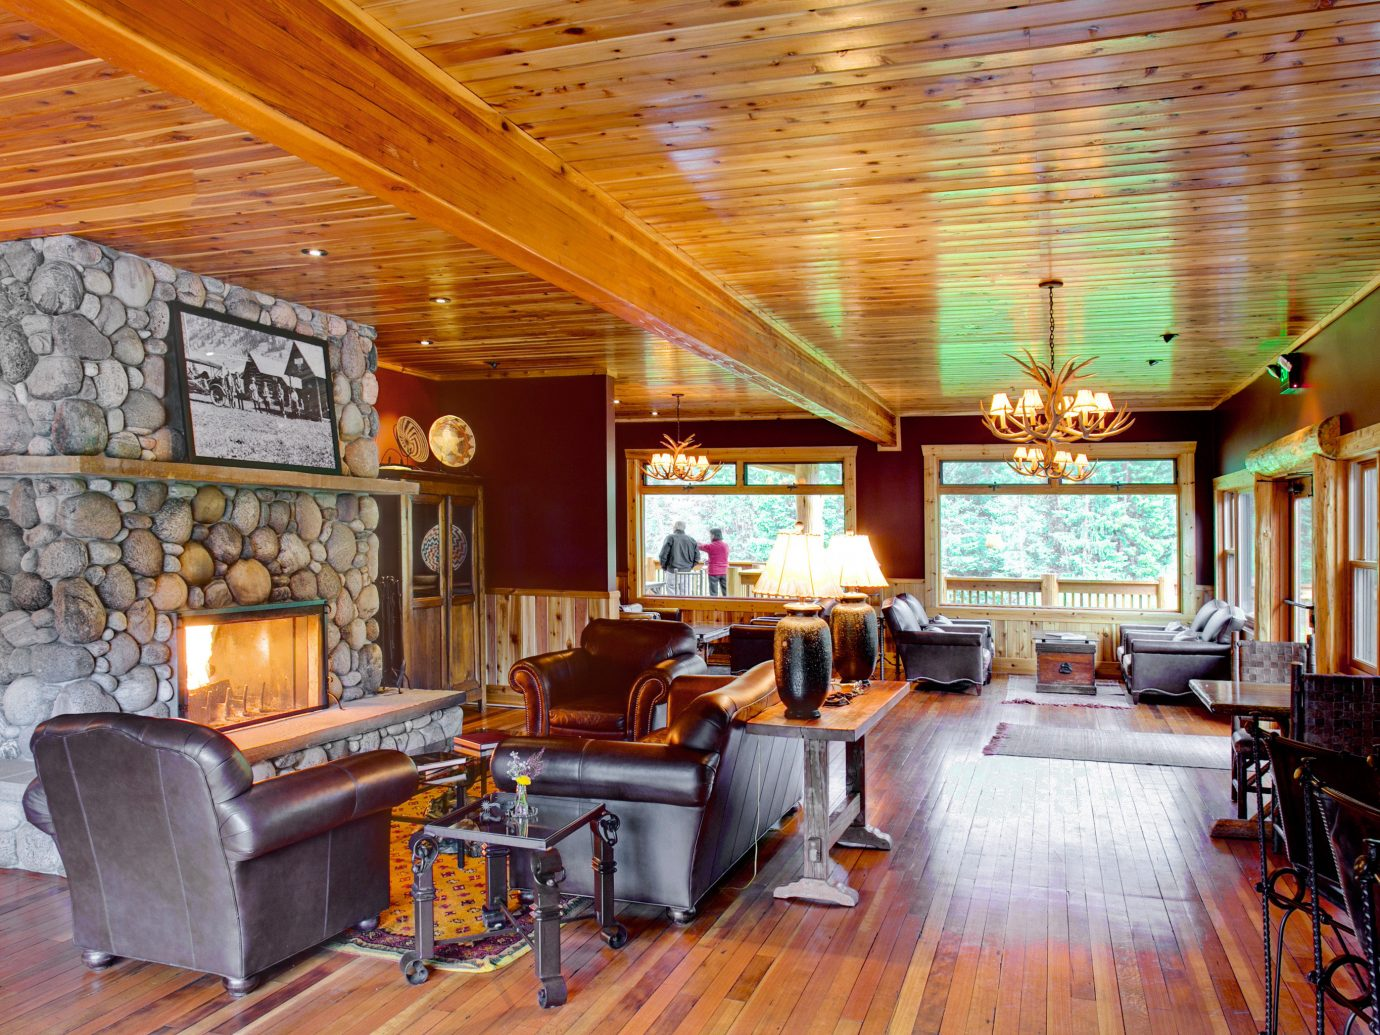 Country Fireplace Glamping Hotels Lodge Lounge Montana Outdoors + Adventure Ranch Rustic Scenic views Trip Ideas indoor floor ceiling Living room property recreation room estate living room home furniture interior design real estate wood Lobby cottage mansion log cabin area